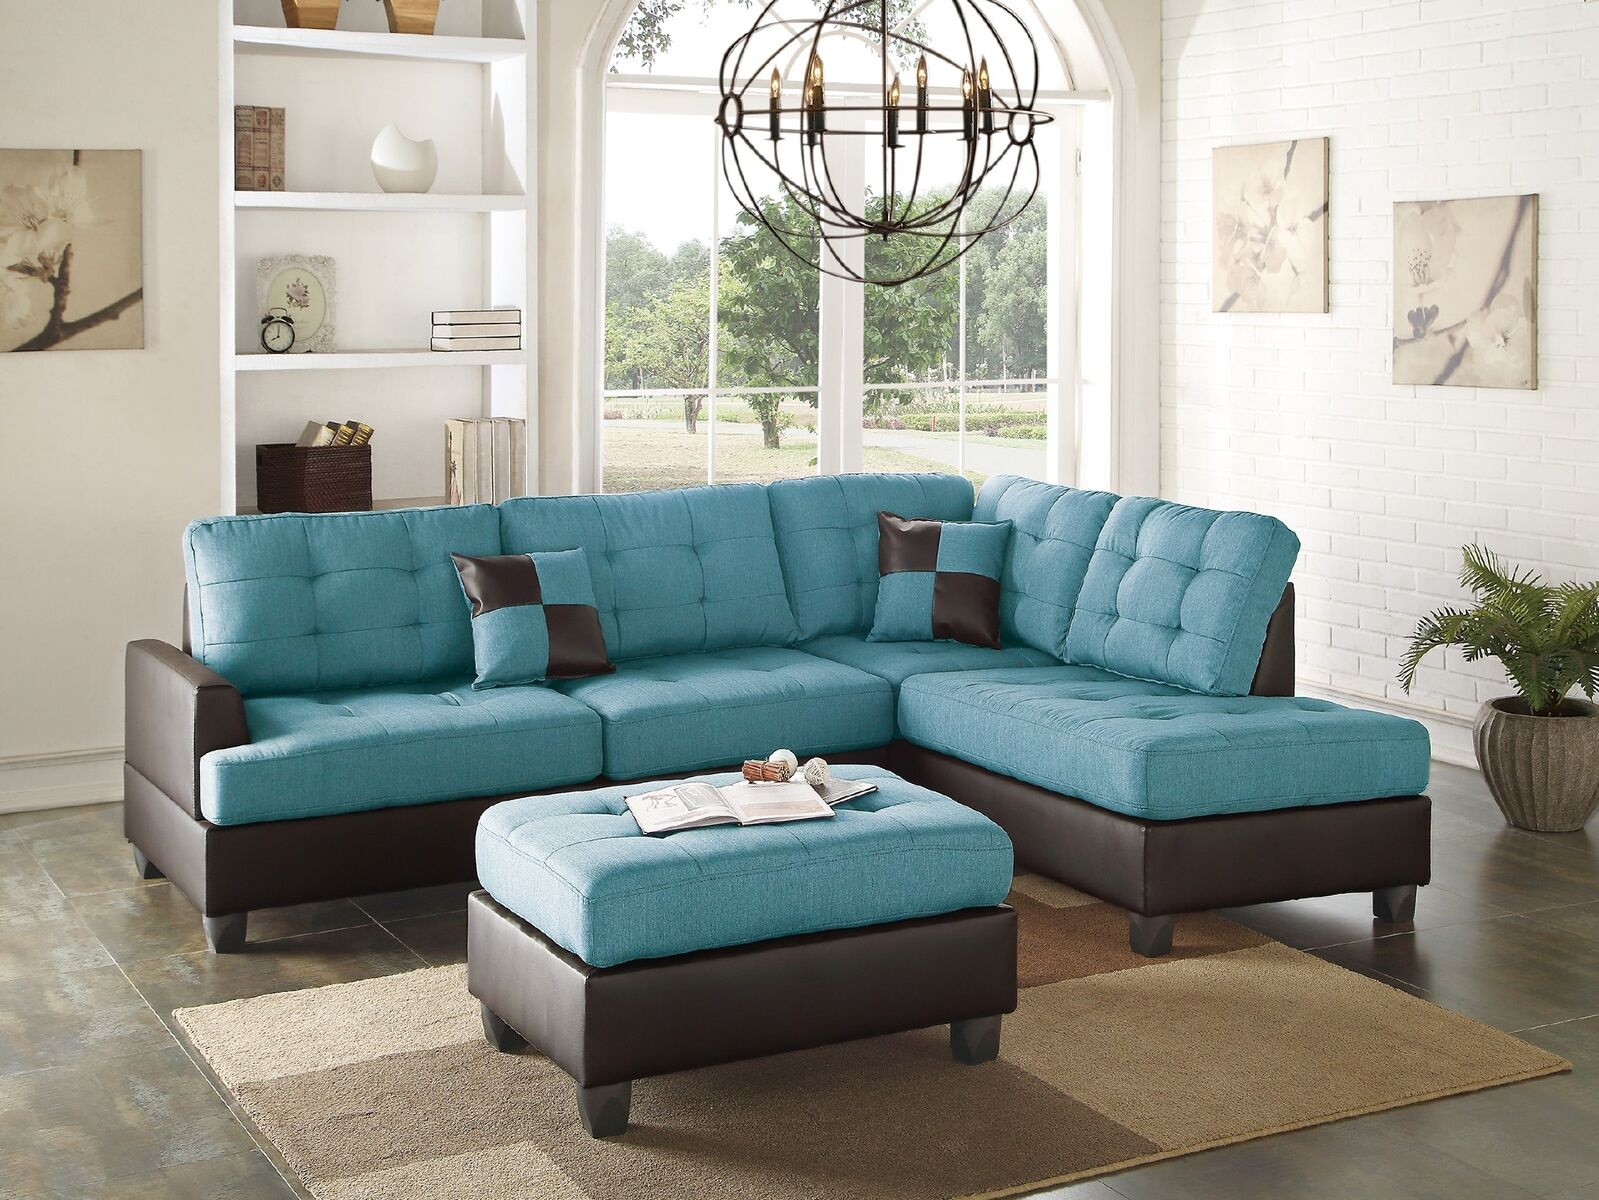 Brilliant Mathew Sectional Sofa Set Contemporary Teal Linen Like Fabric Sofa Chaise Ottoman Tufted Comfort Couch Living Room Furniture Ocoug Best Dining Table And Chair Ideas Images Ocougorg